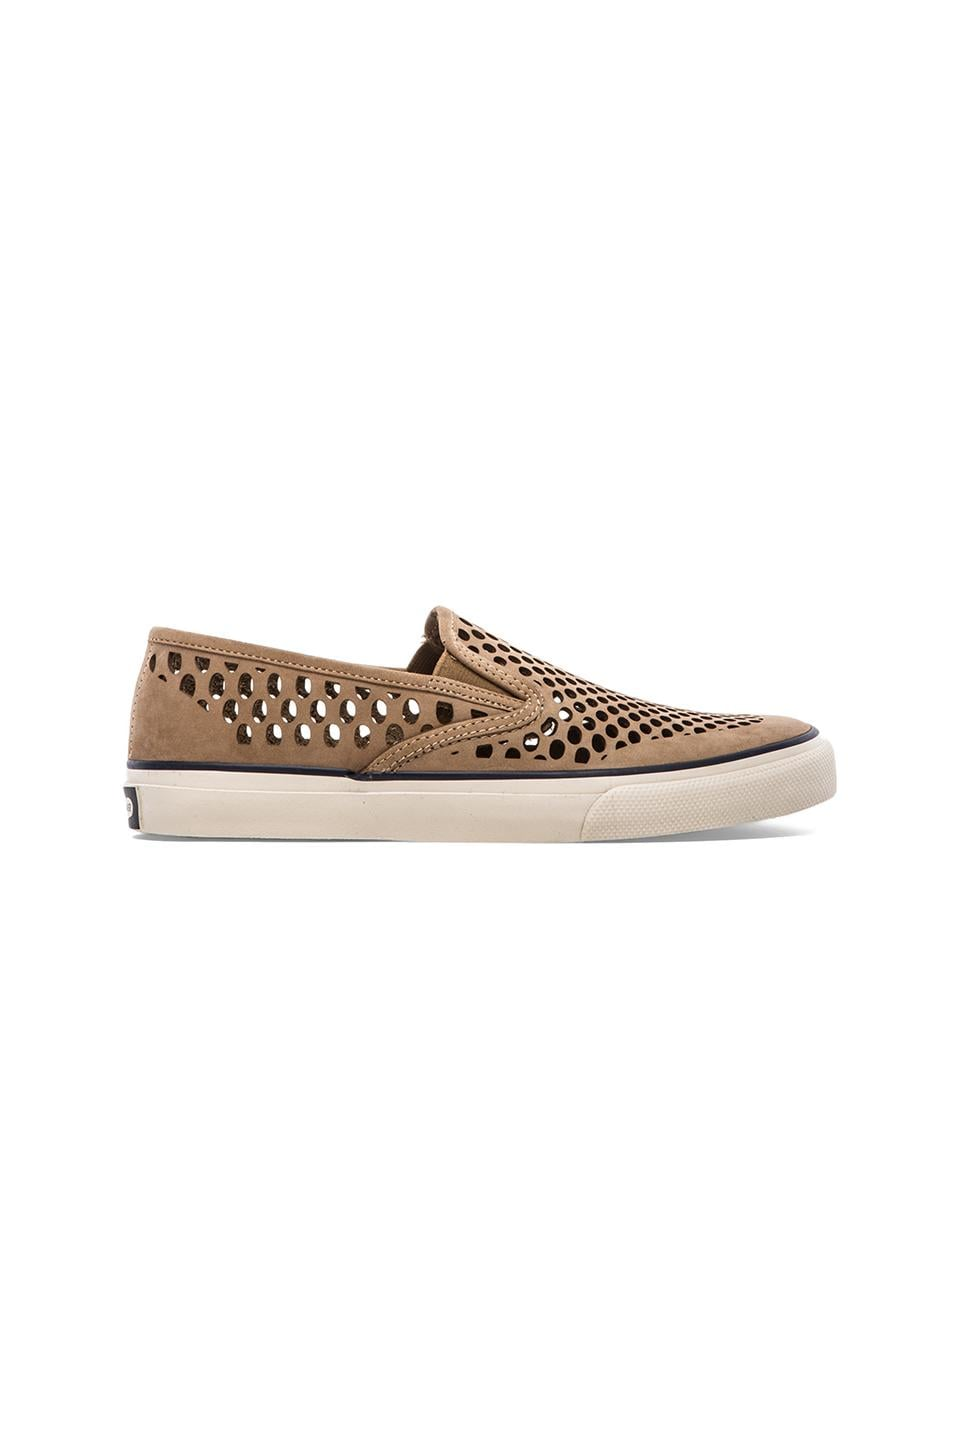 Sperry Top-Sider CVO Laser Perf Slip On in Taupe